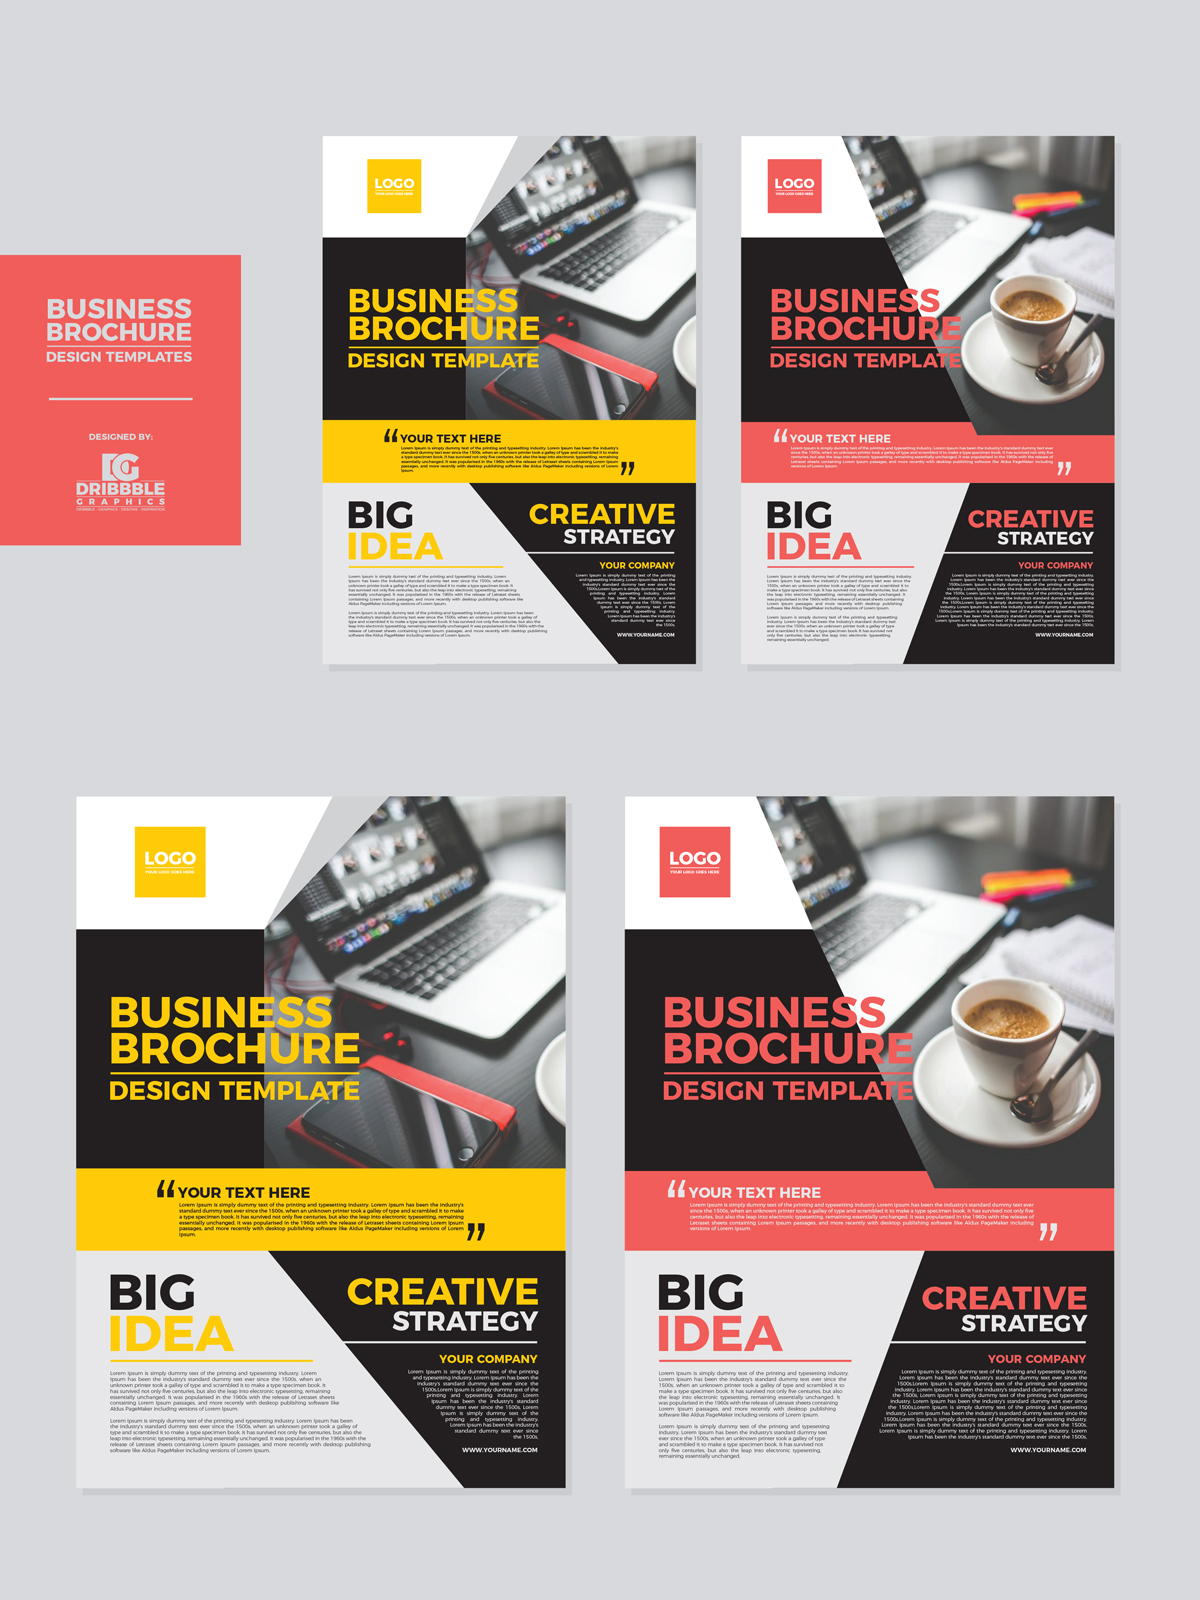 business brochure templates - free business brochure design templates dribbble graphics